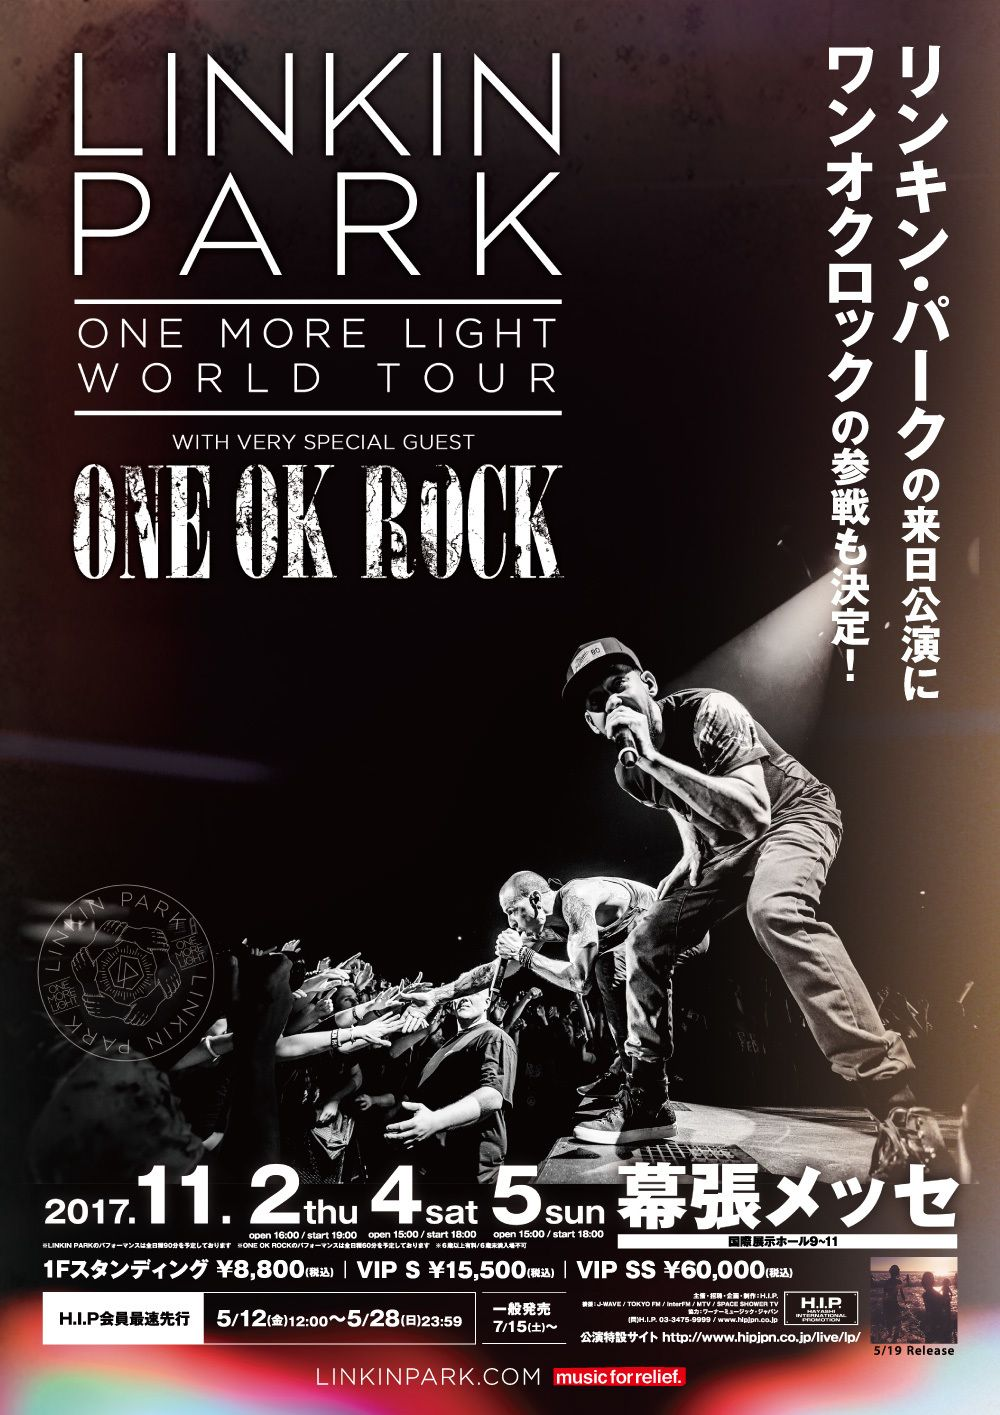 JAPAN 2017 ONE MORE LIGHT WORLD TOUR (With images